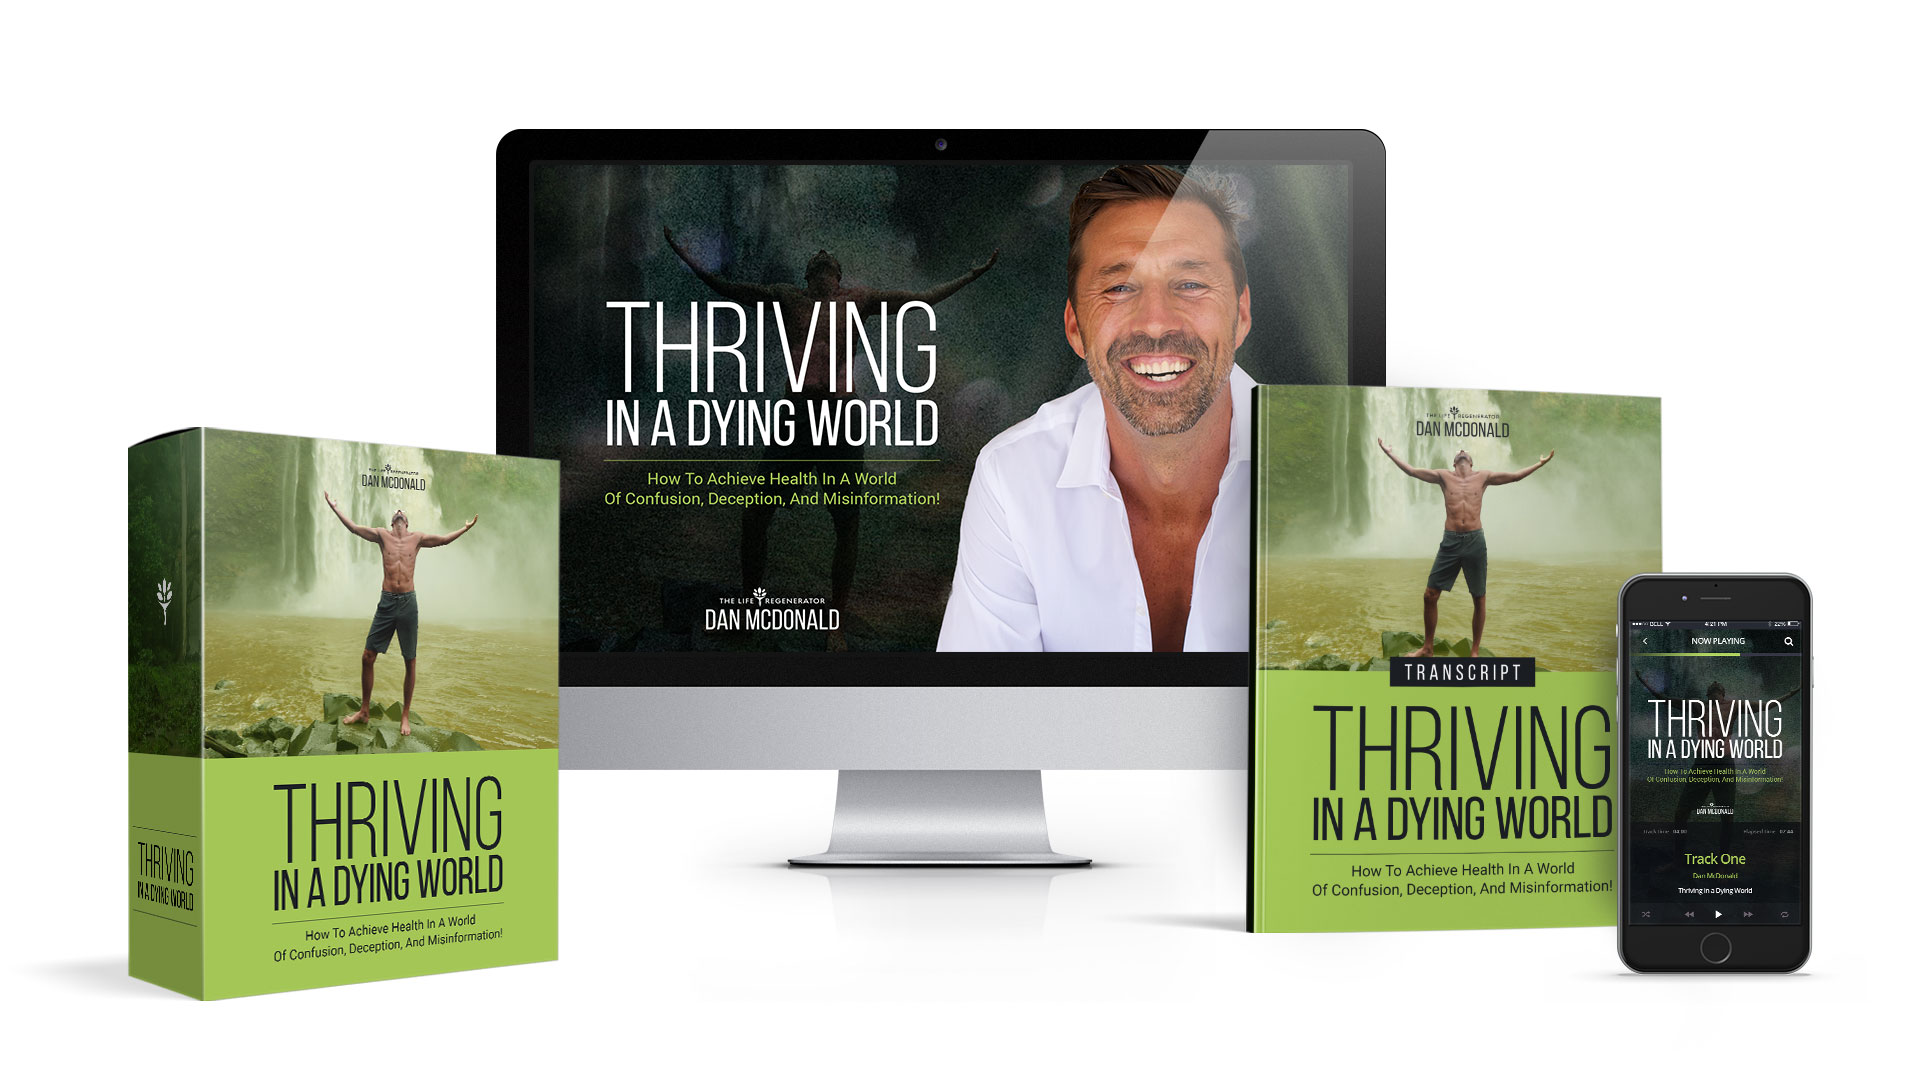 thriving-3dspread